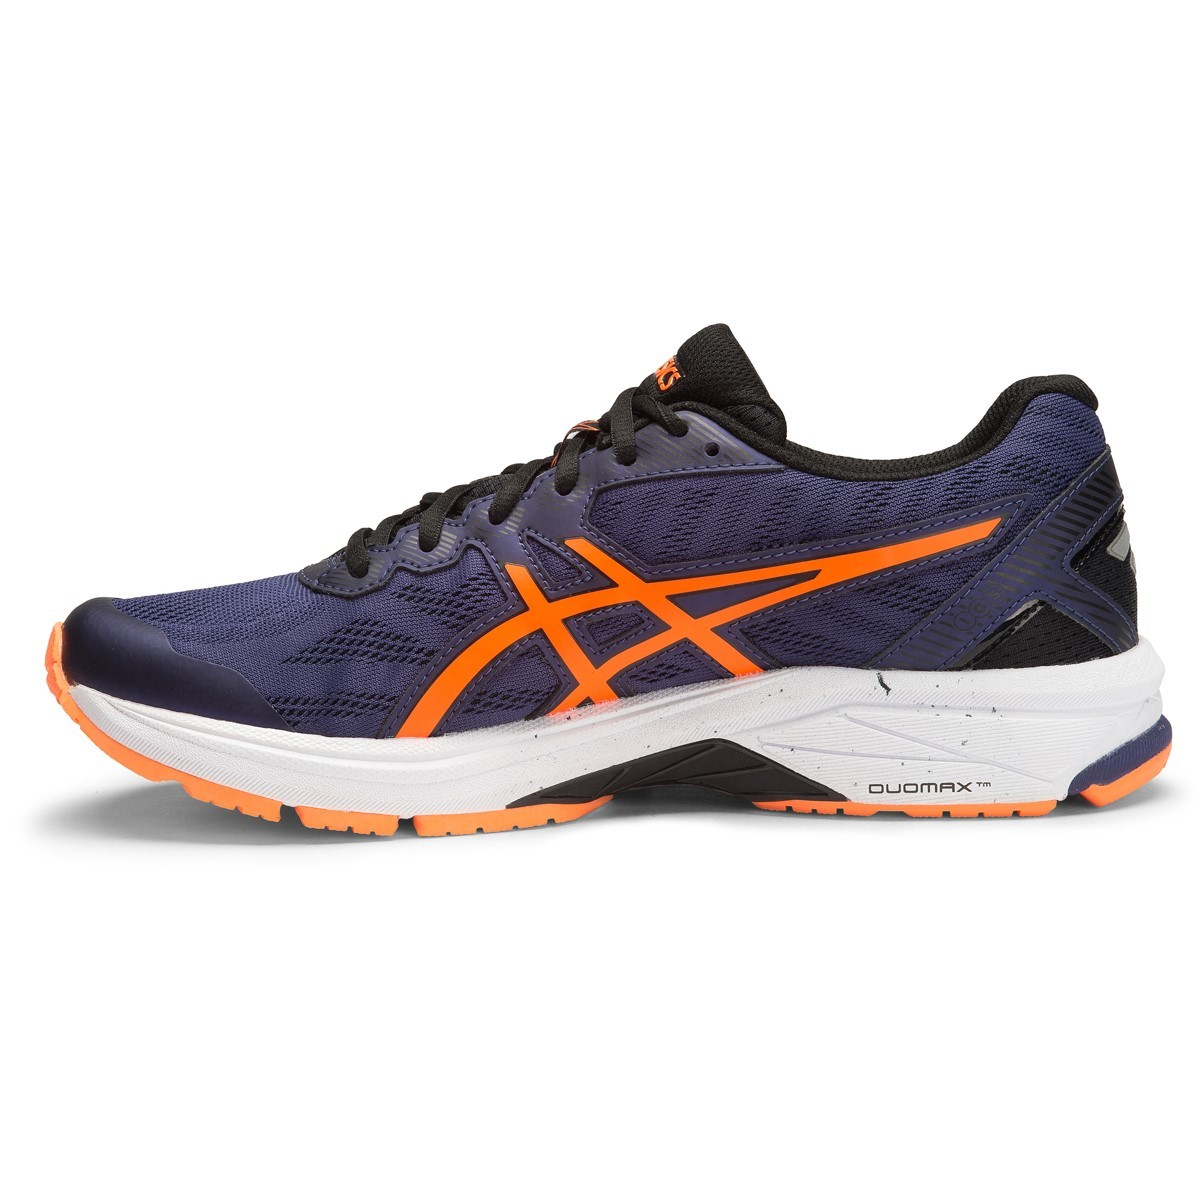 best service 22512 893b0 Asics GT-1000 5 (2E) - Mens Running Shoes - Indigo Blue